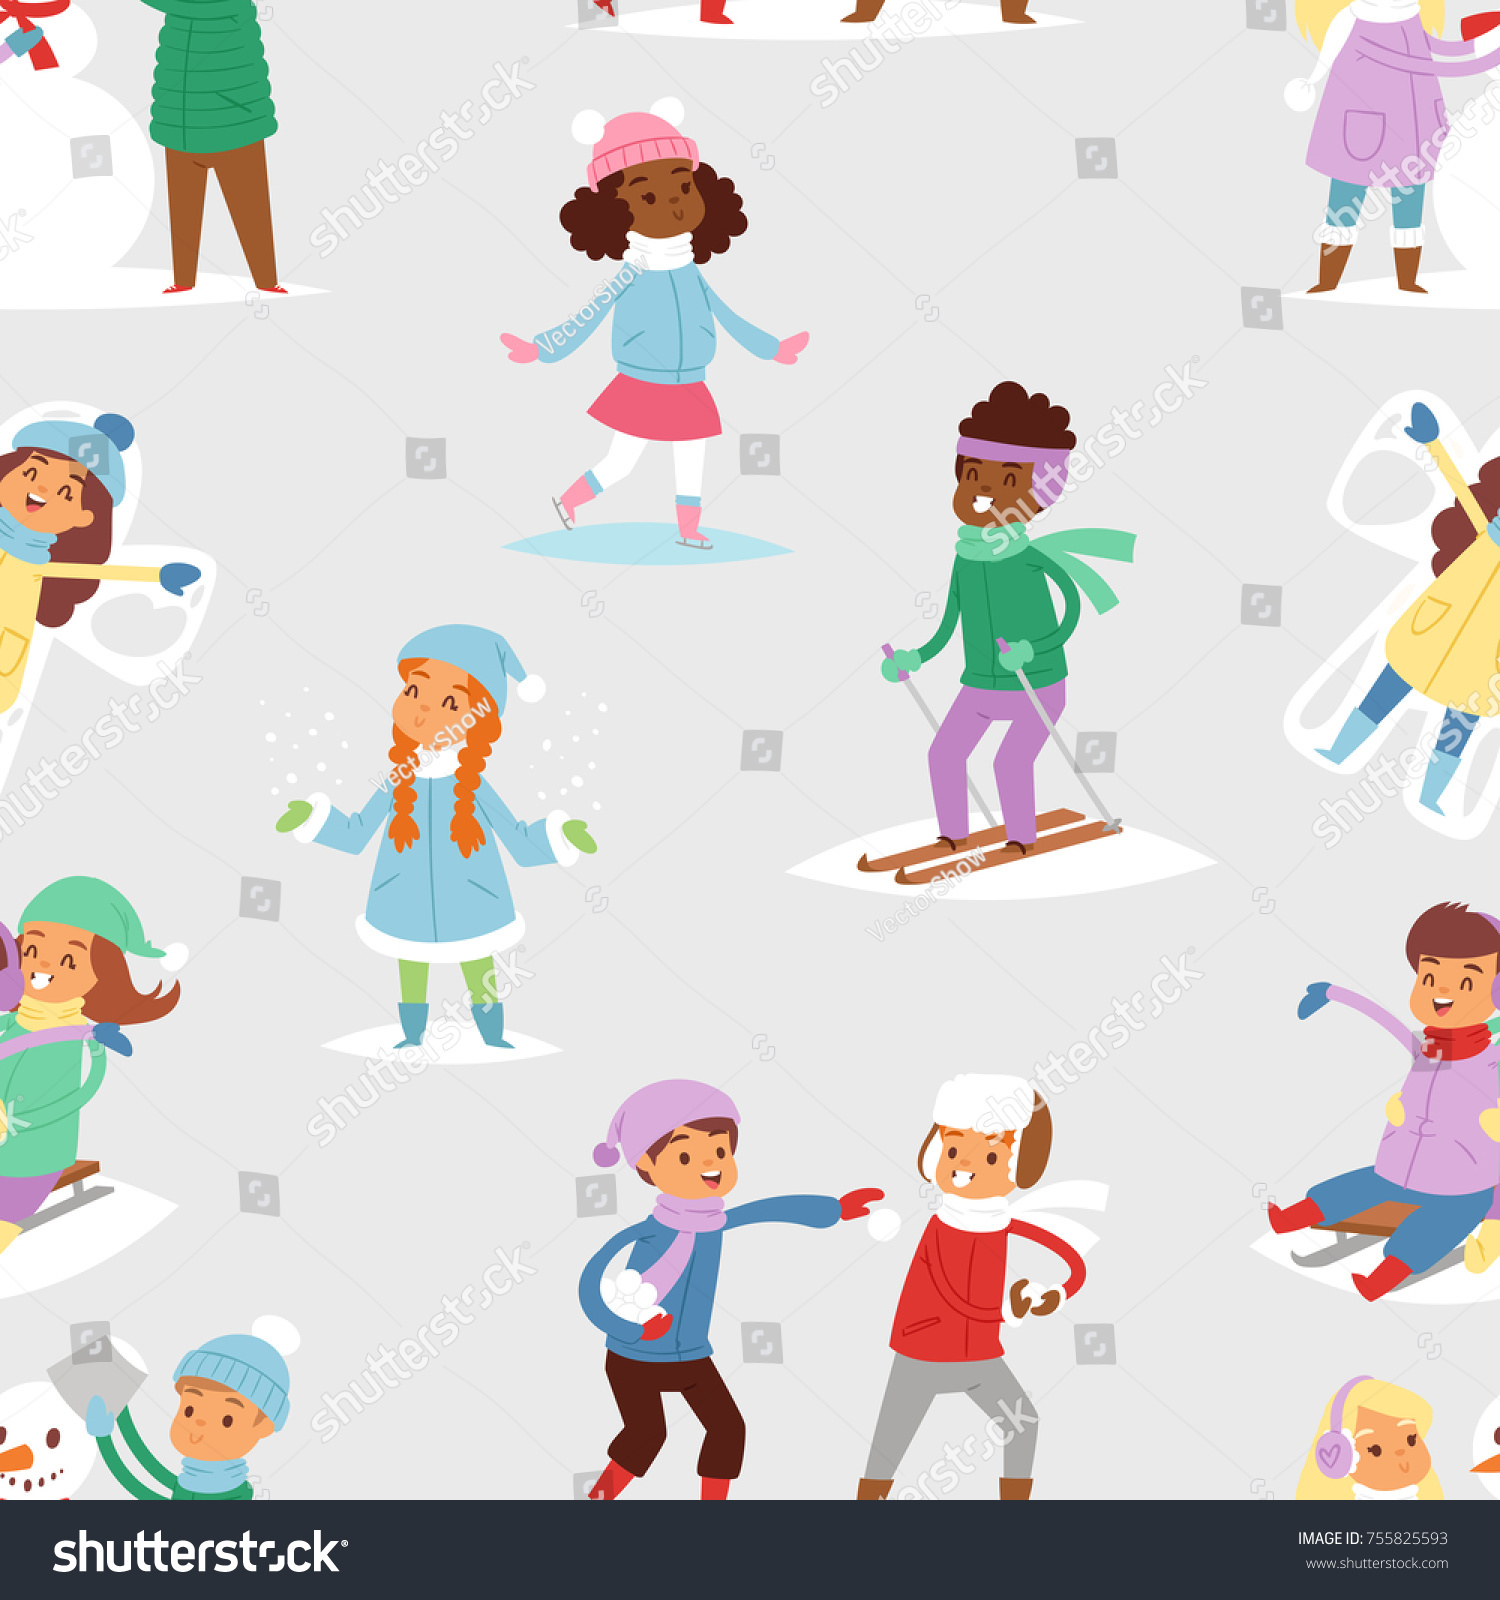 Winter Christmas Kids Vector Playing Games Stock Vector (Royalty ...